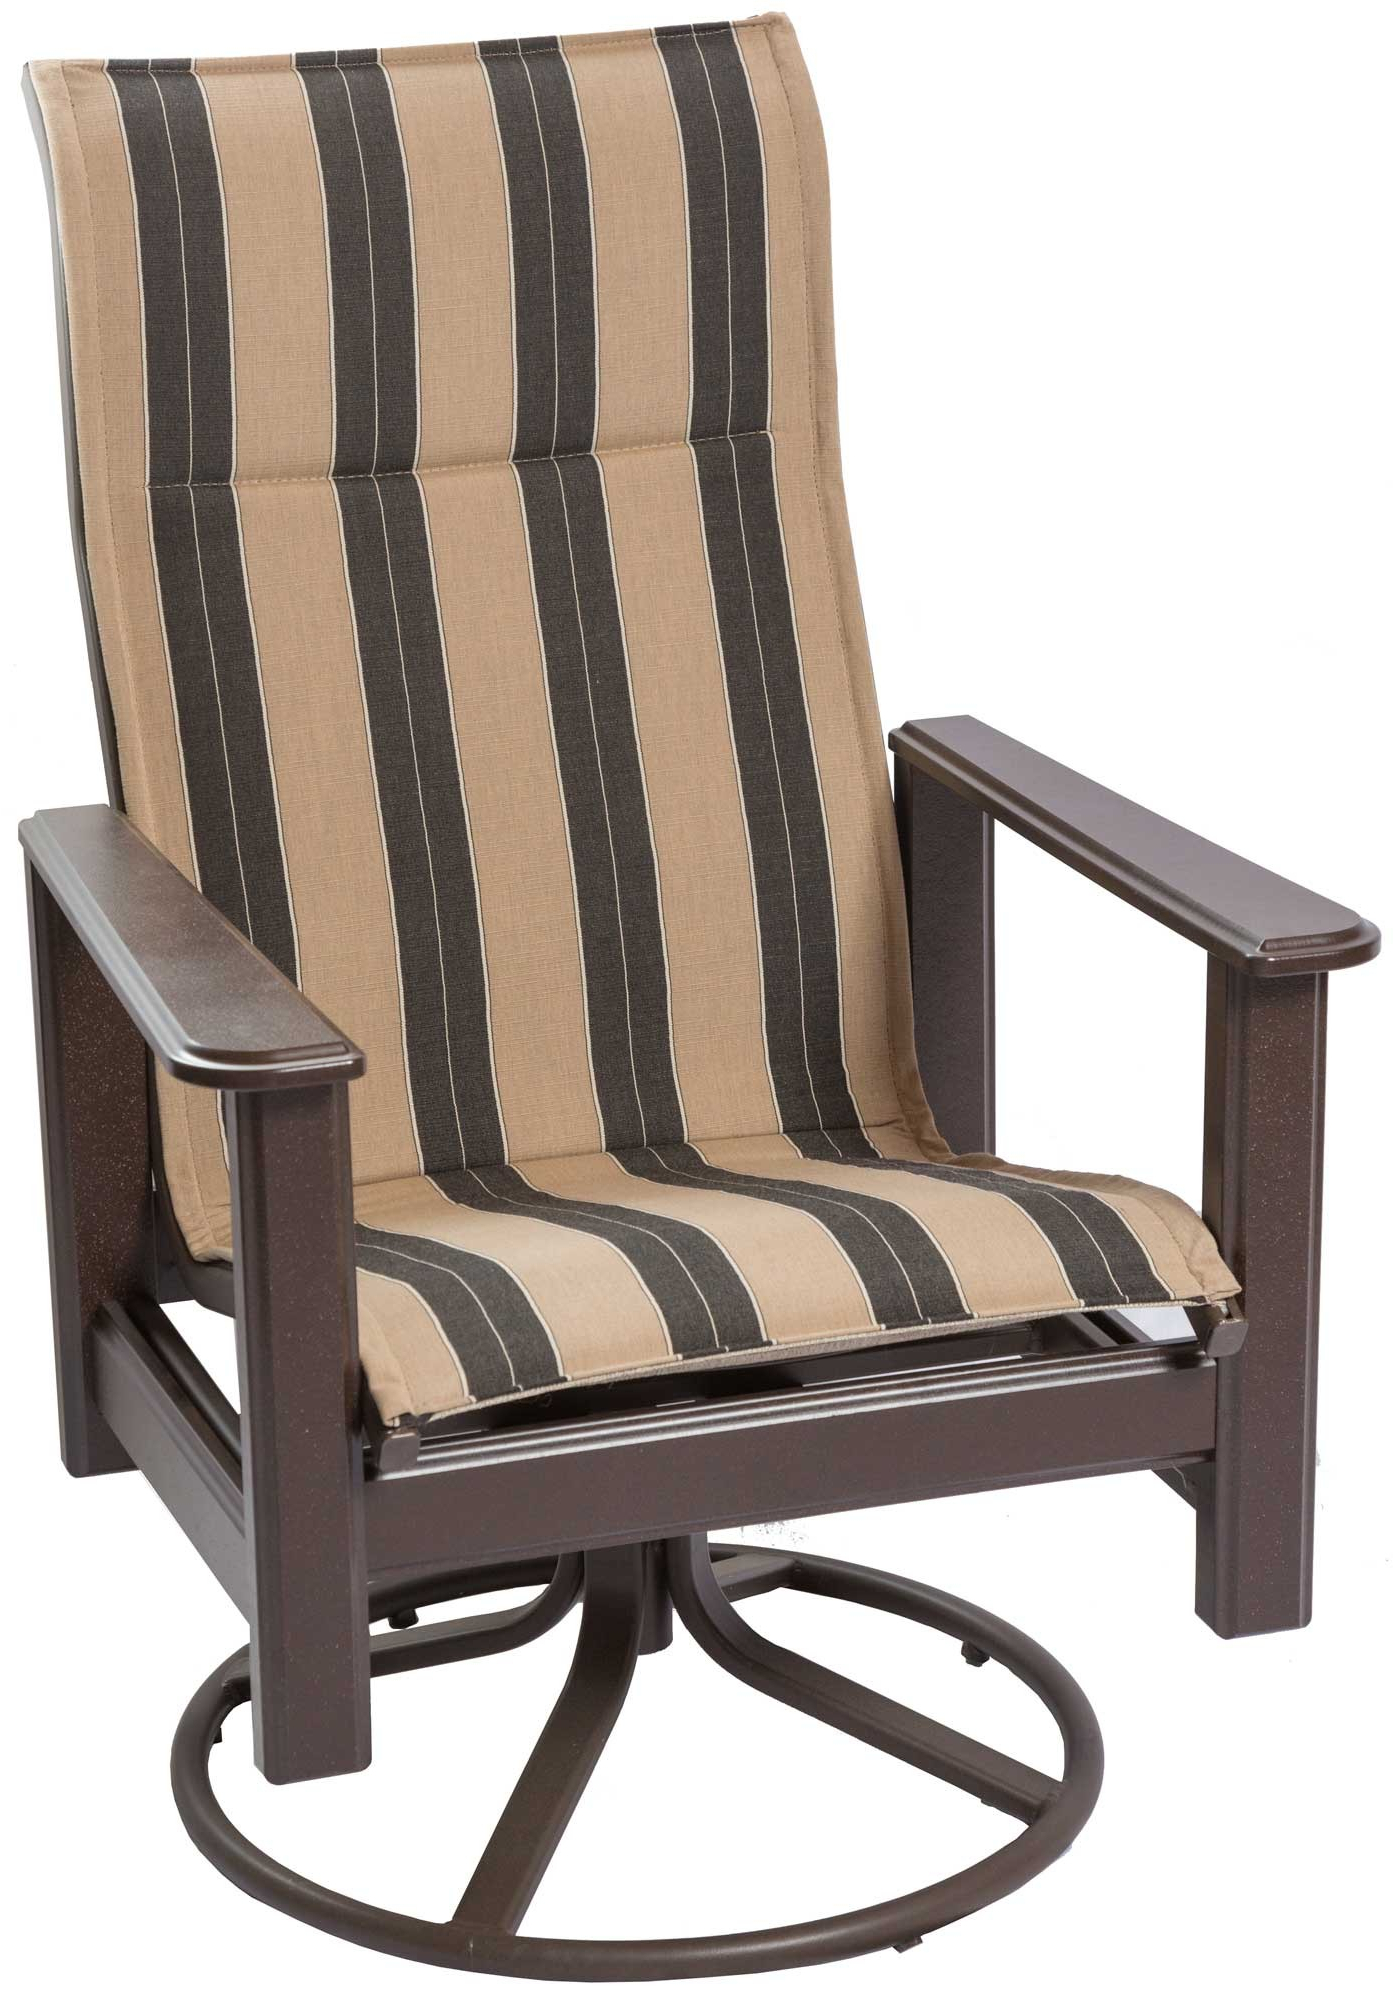 Famous Hampton High Back Swivel Rockerwindward Design Group Intended For Sling High Back Swivel Chairs (View 22 of 30)